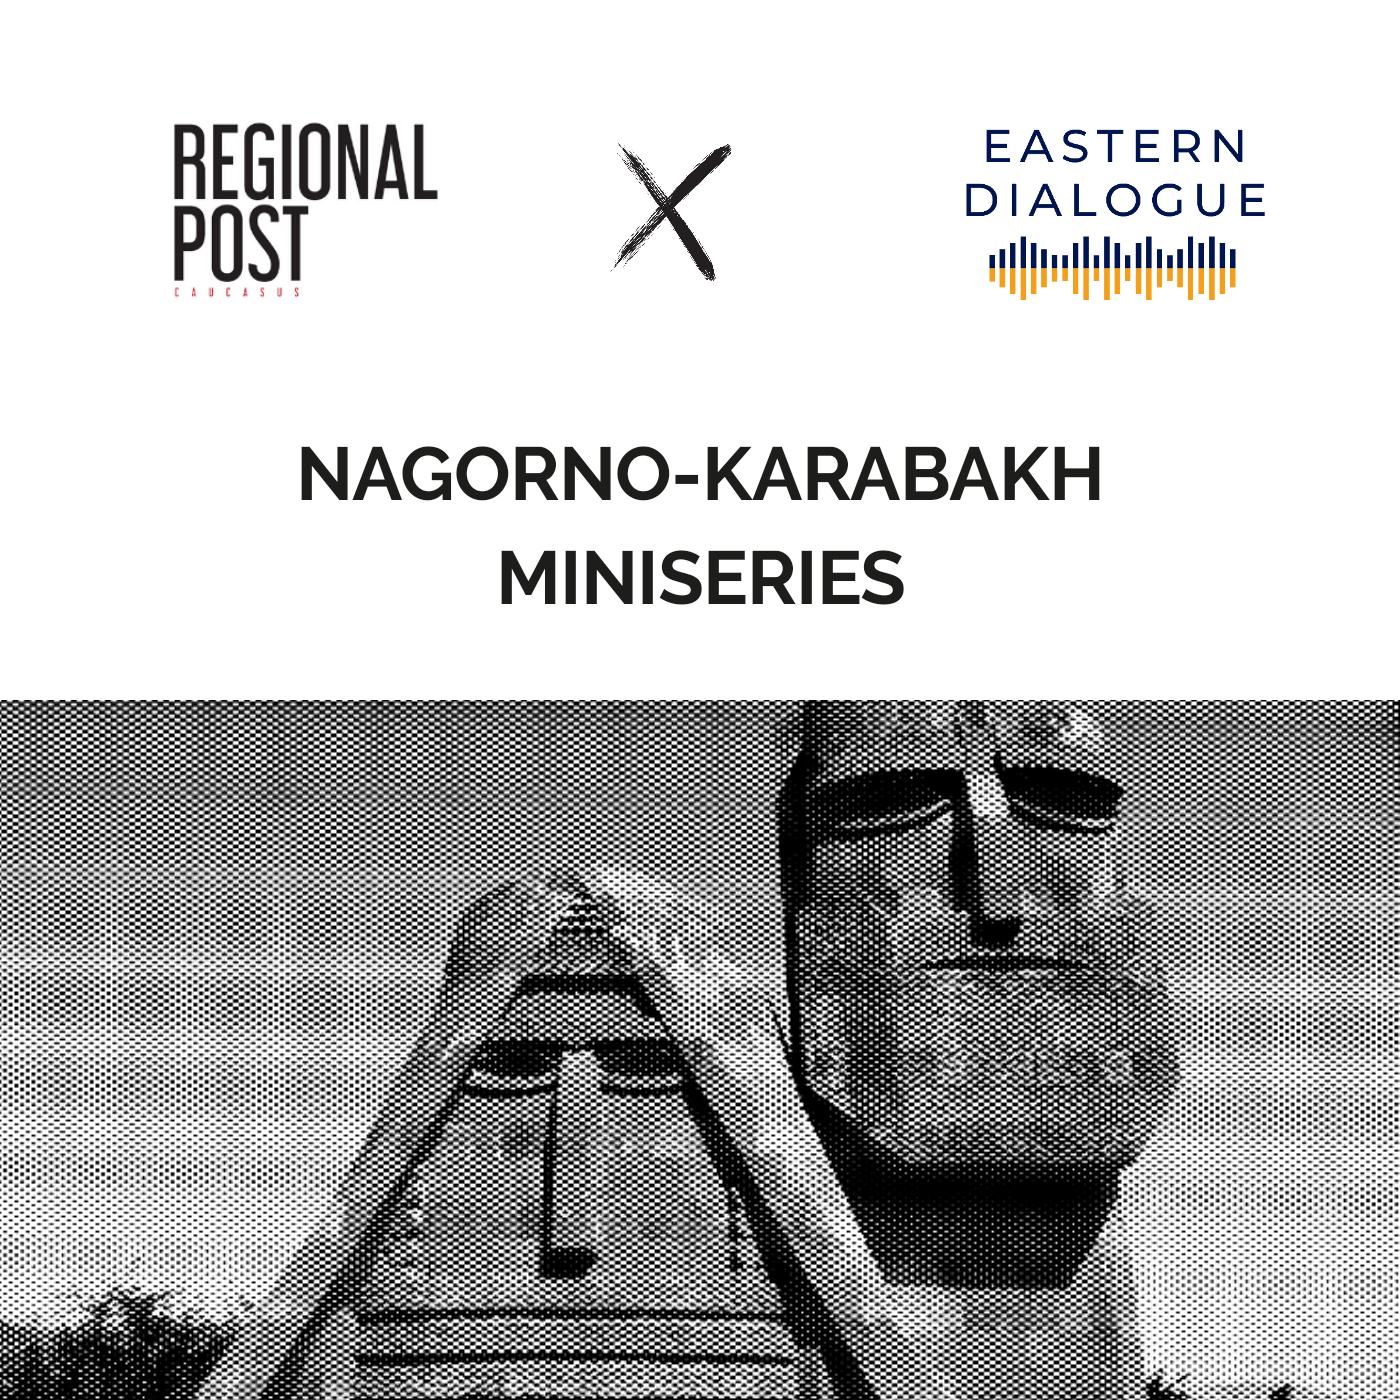 Trailer - Regional Post's Nagorno-Karabagh War Special Edition Miniseries.